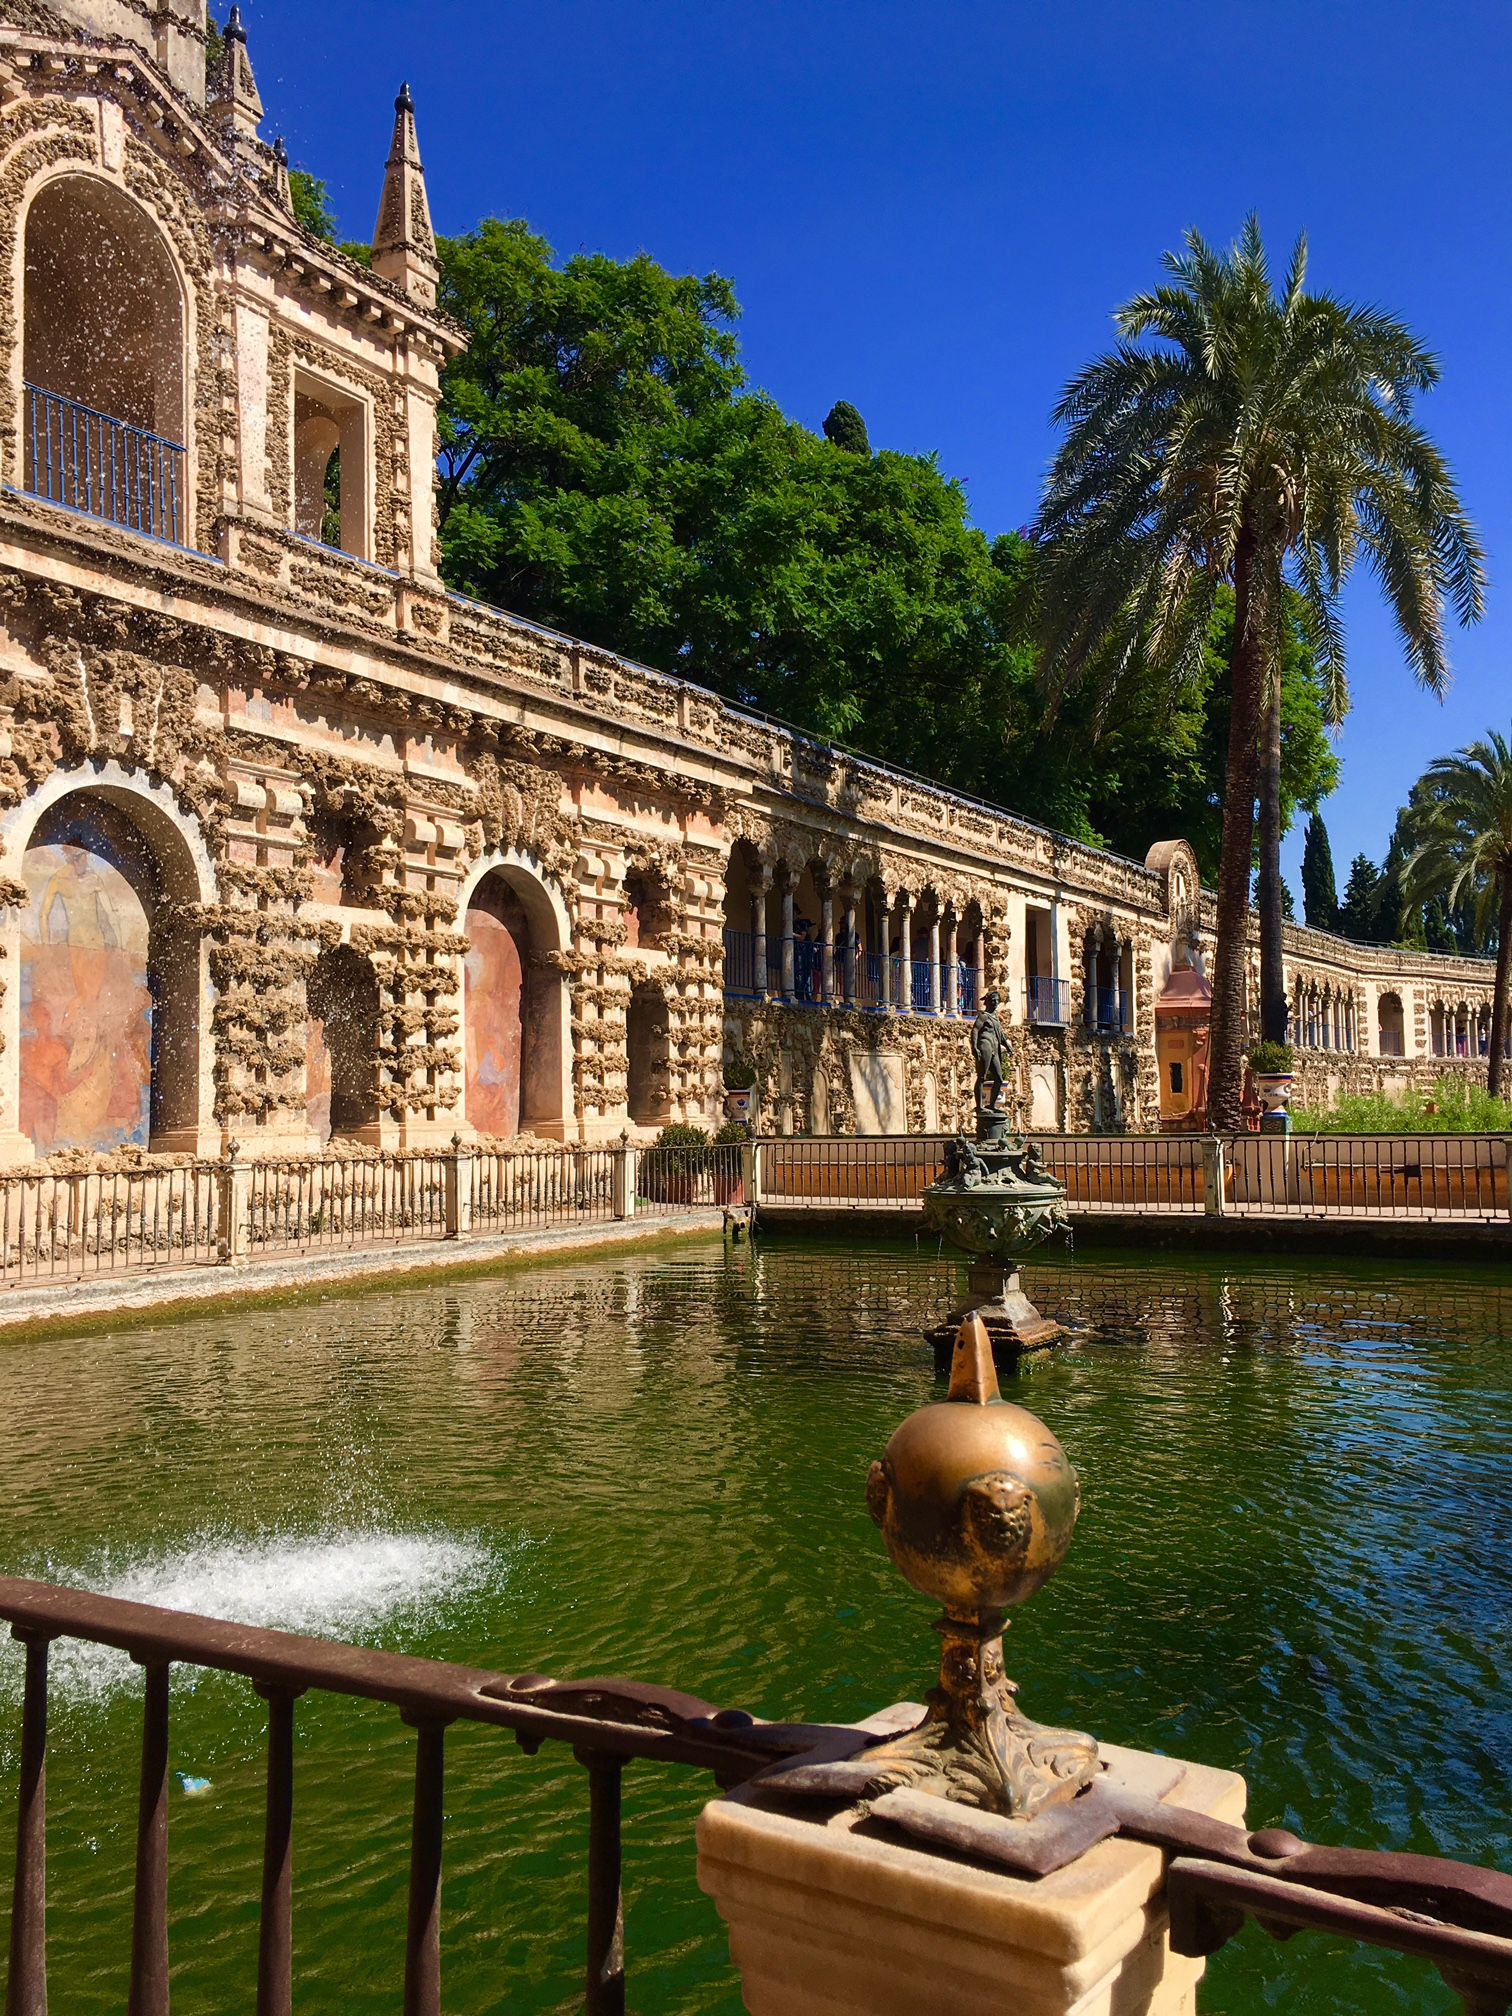 A pool in the private gardens of the Alcazar in Seville. On the ...